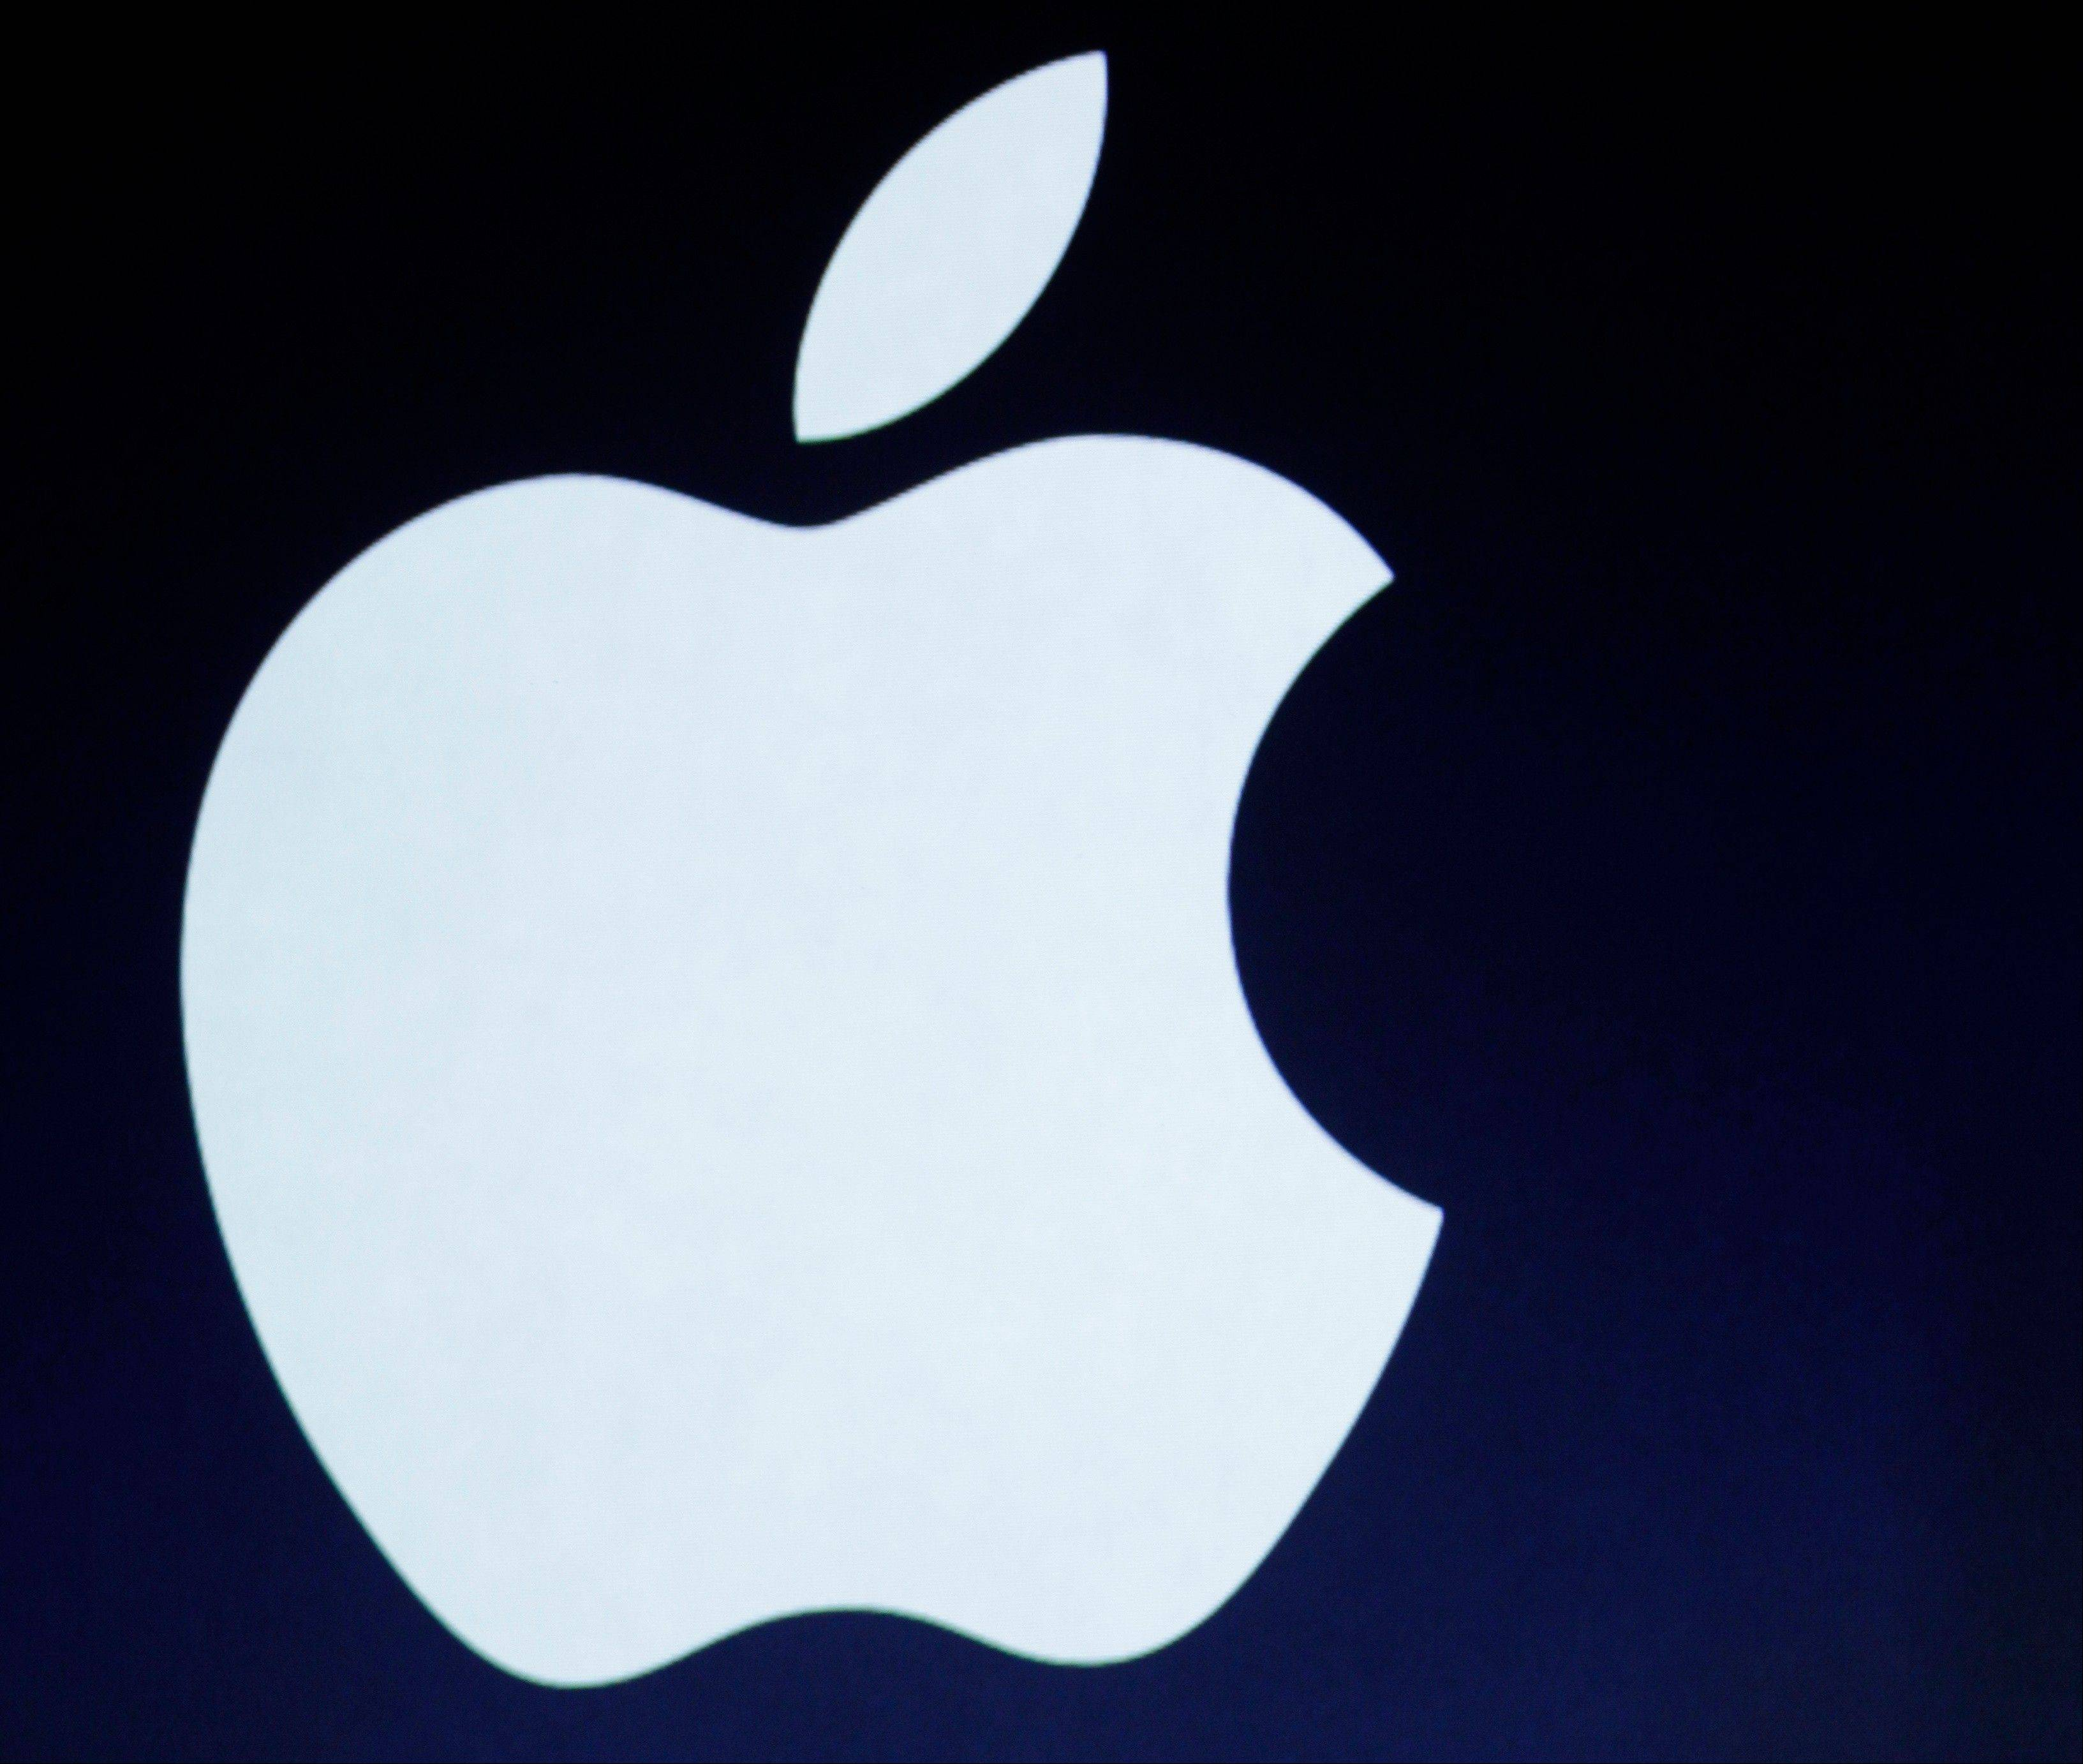 Apple says that hackers may have gained access to personal information of software developers who make the company's apps.